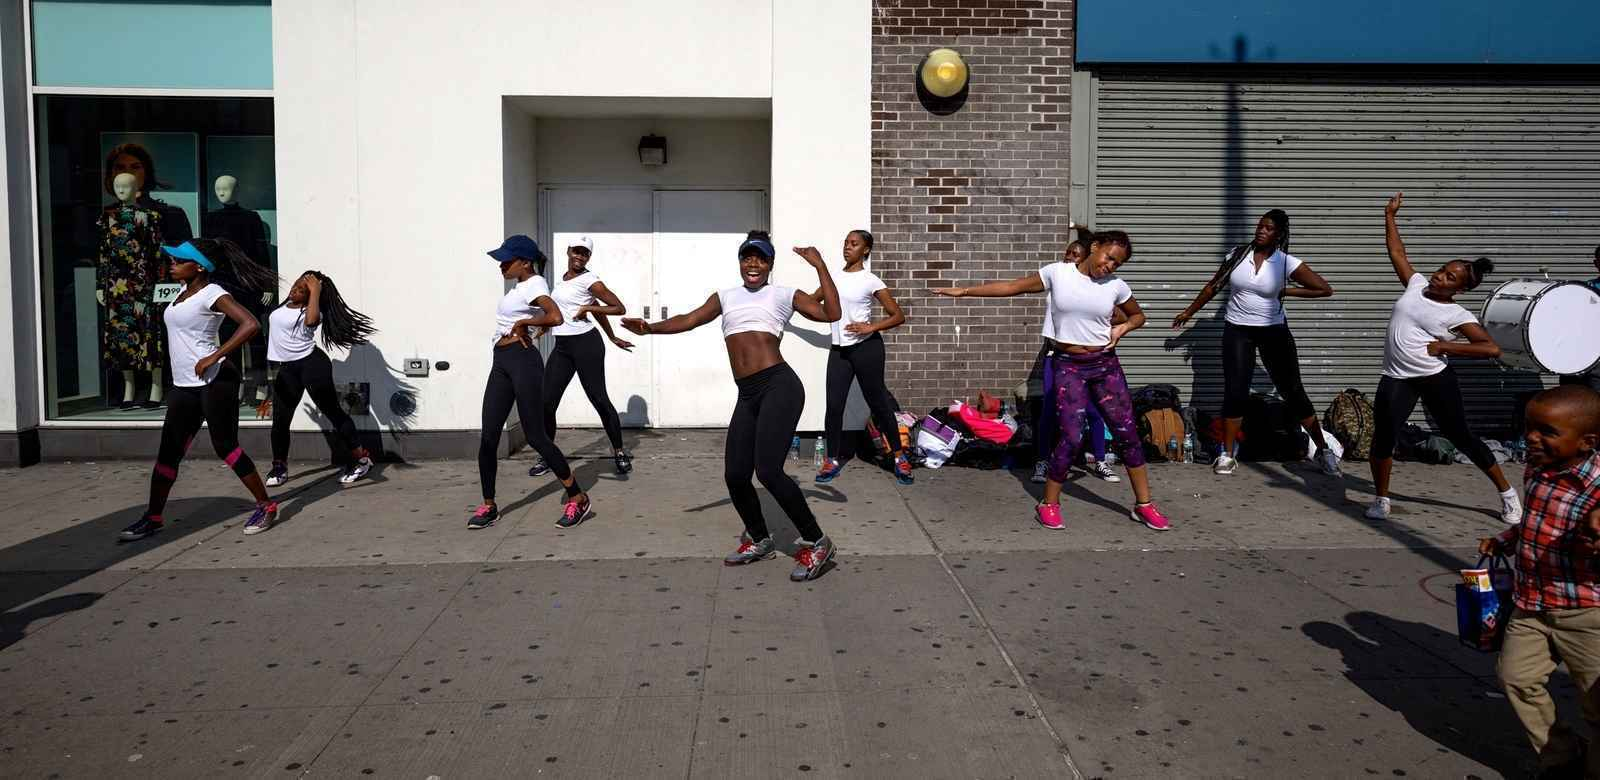 Dancers performing in Harlem, New York